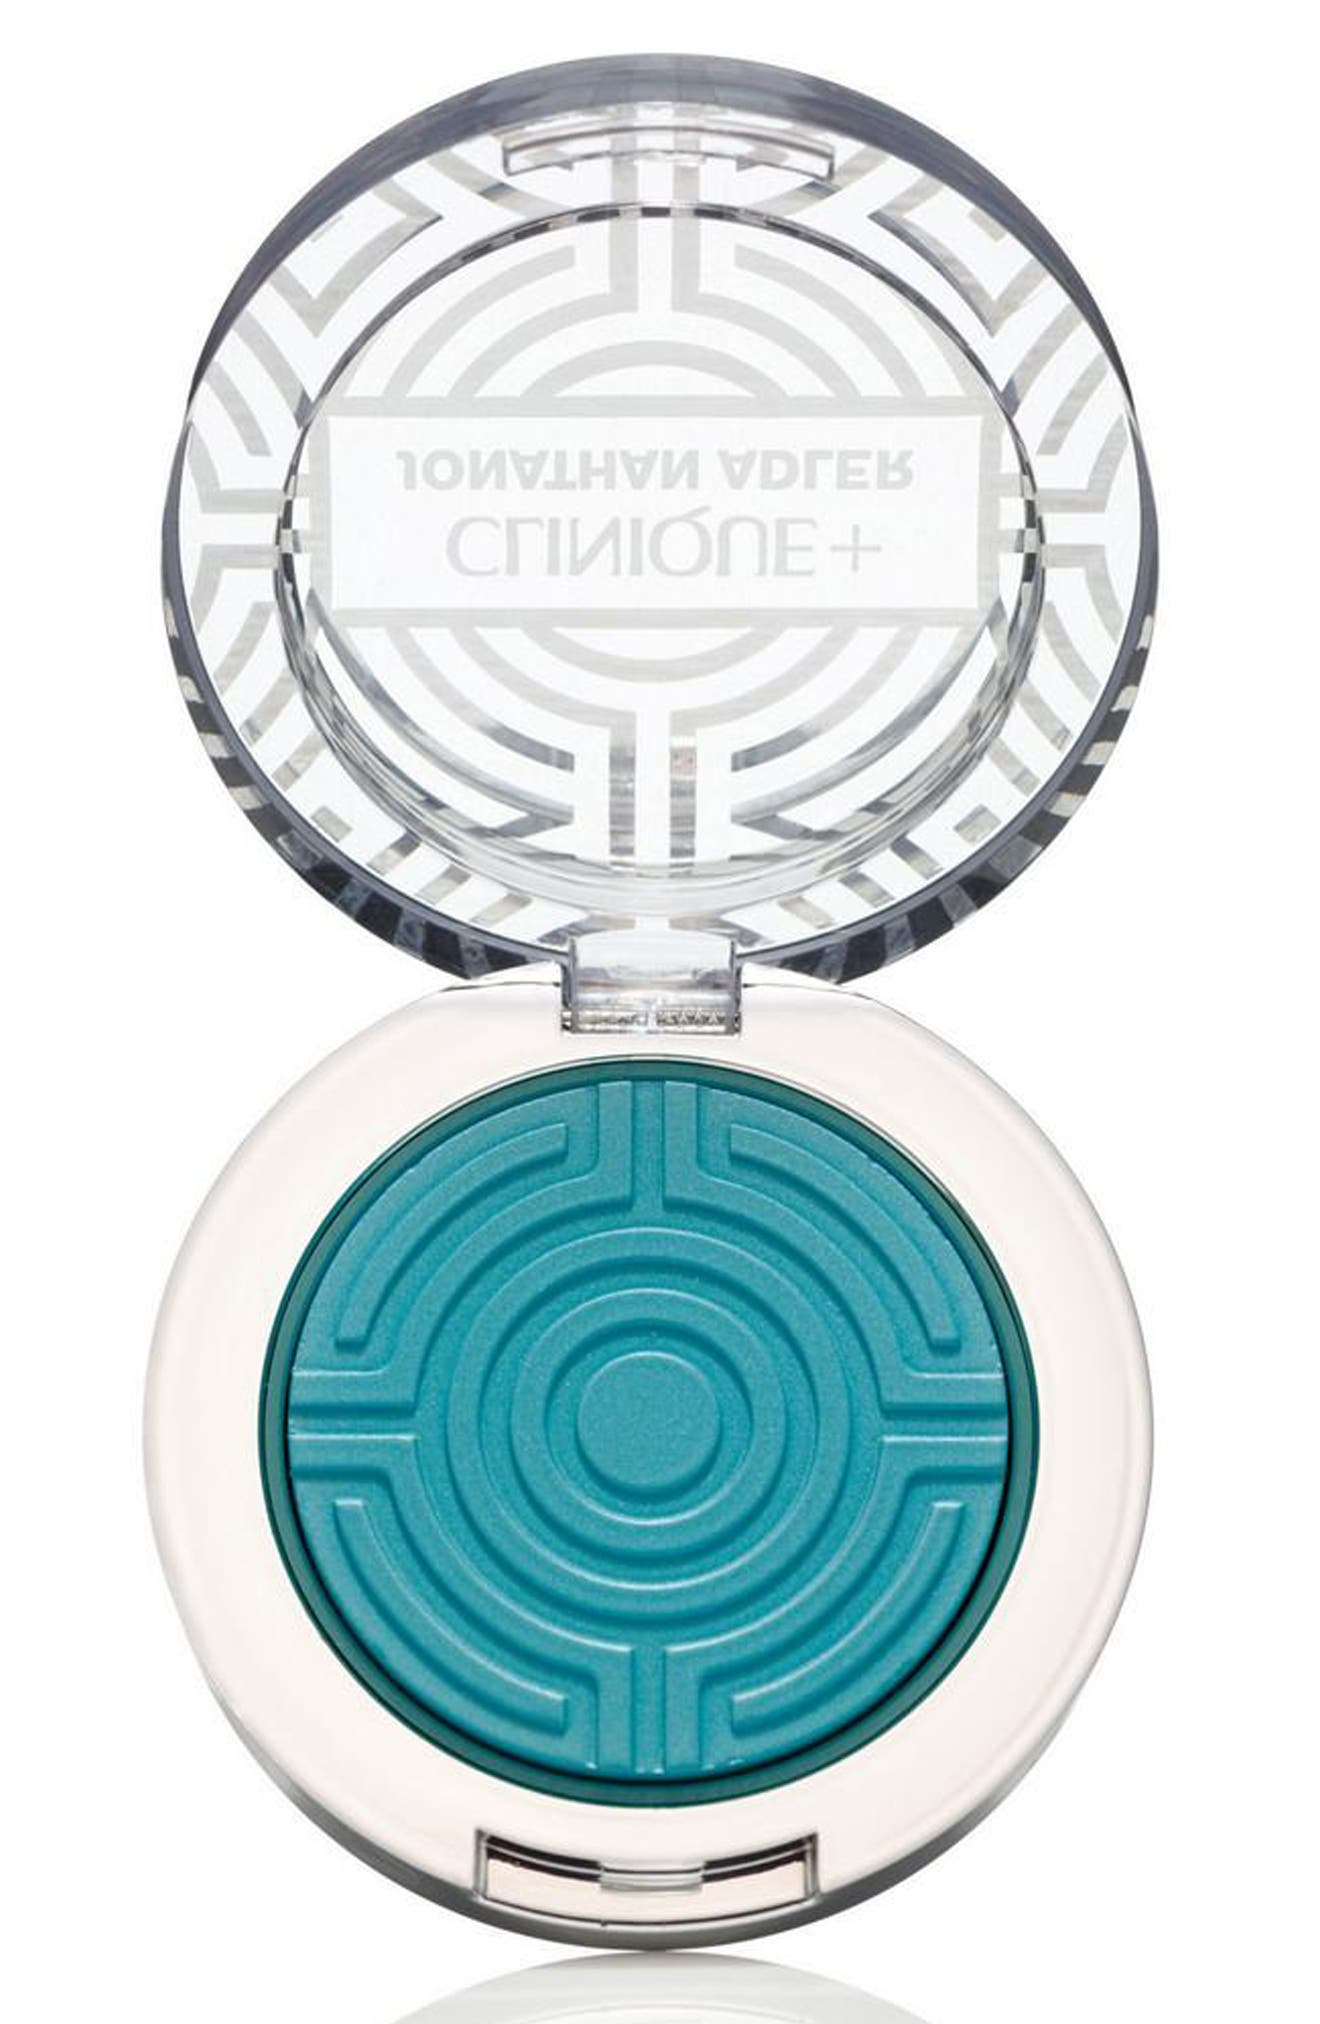 Clinique Jonathan Adler Lid Pop (Limited Edition)